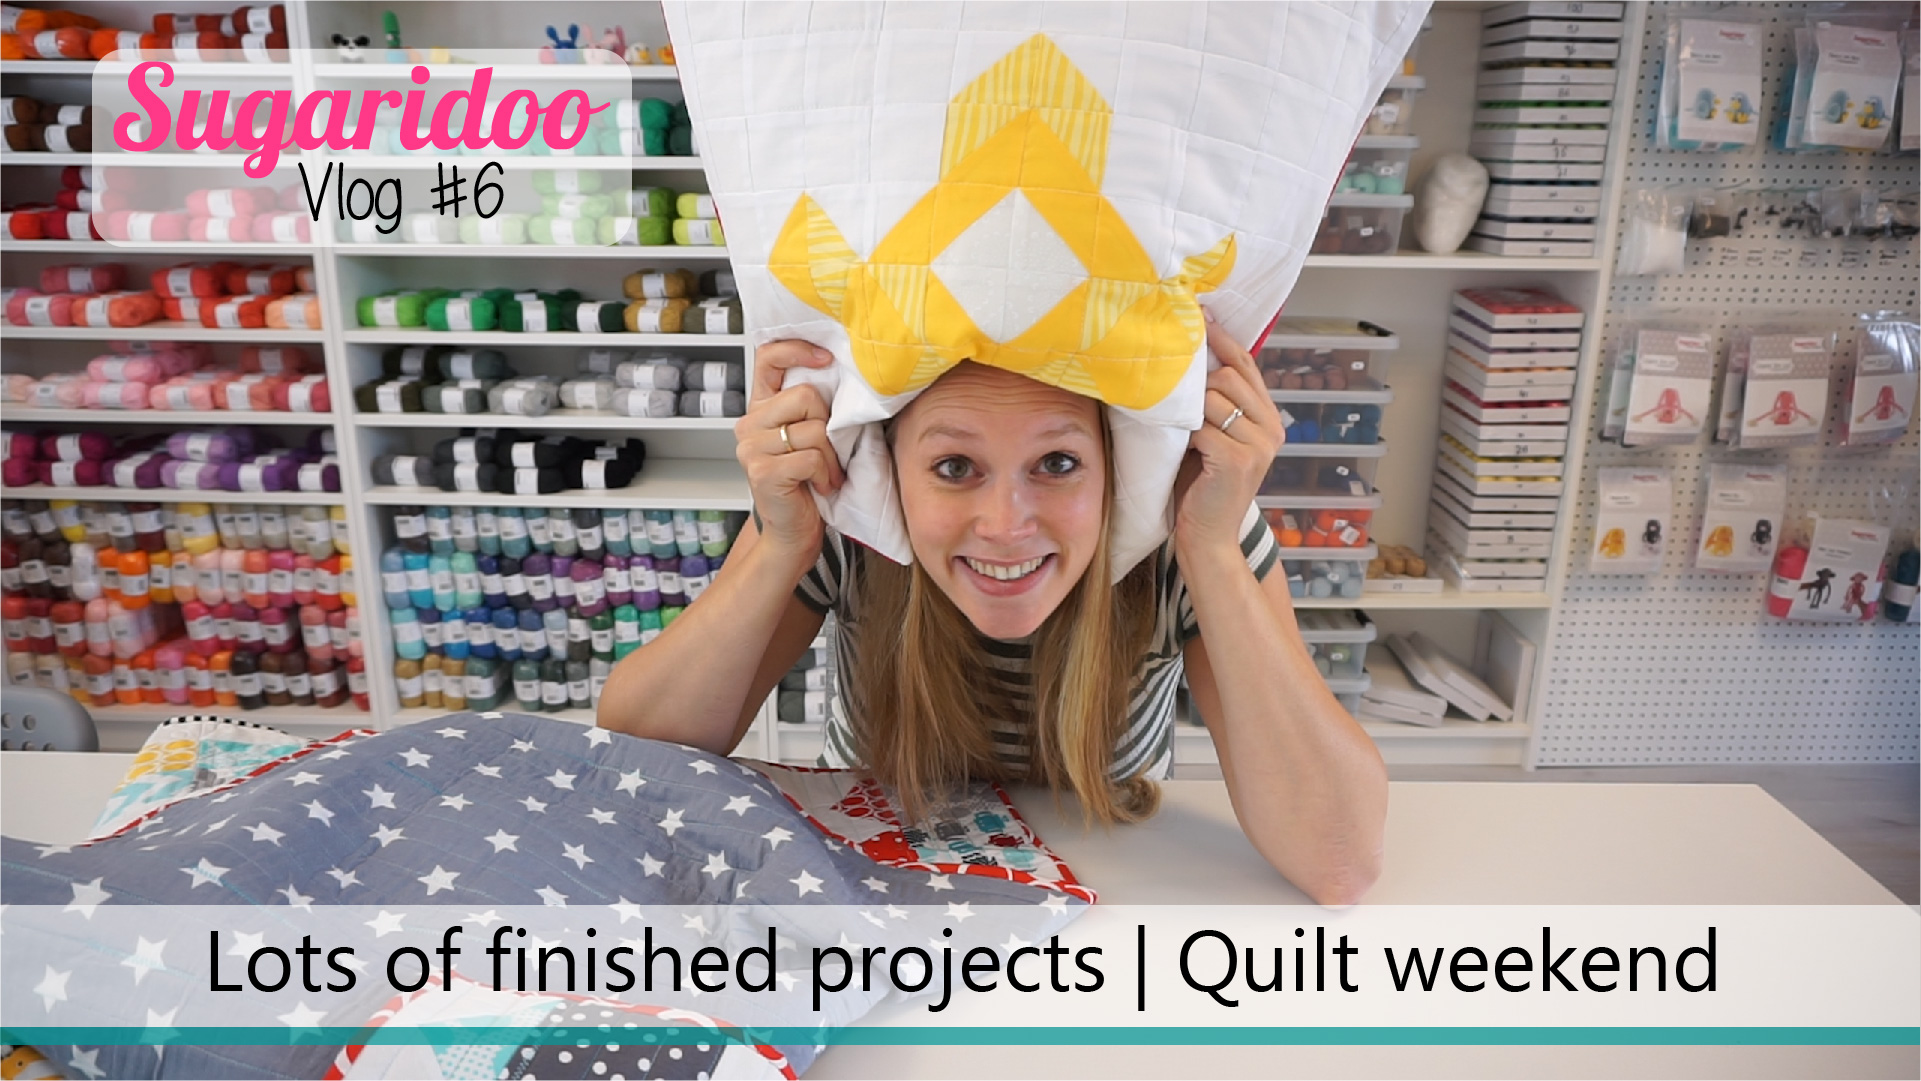 Vlog #6 | Busy week, lots of finished projects